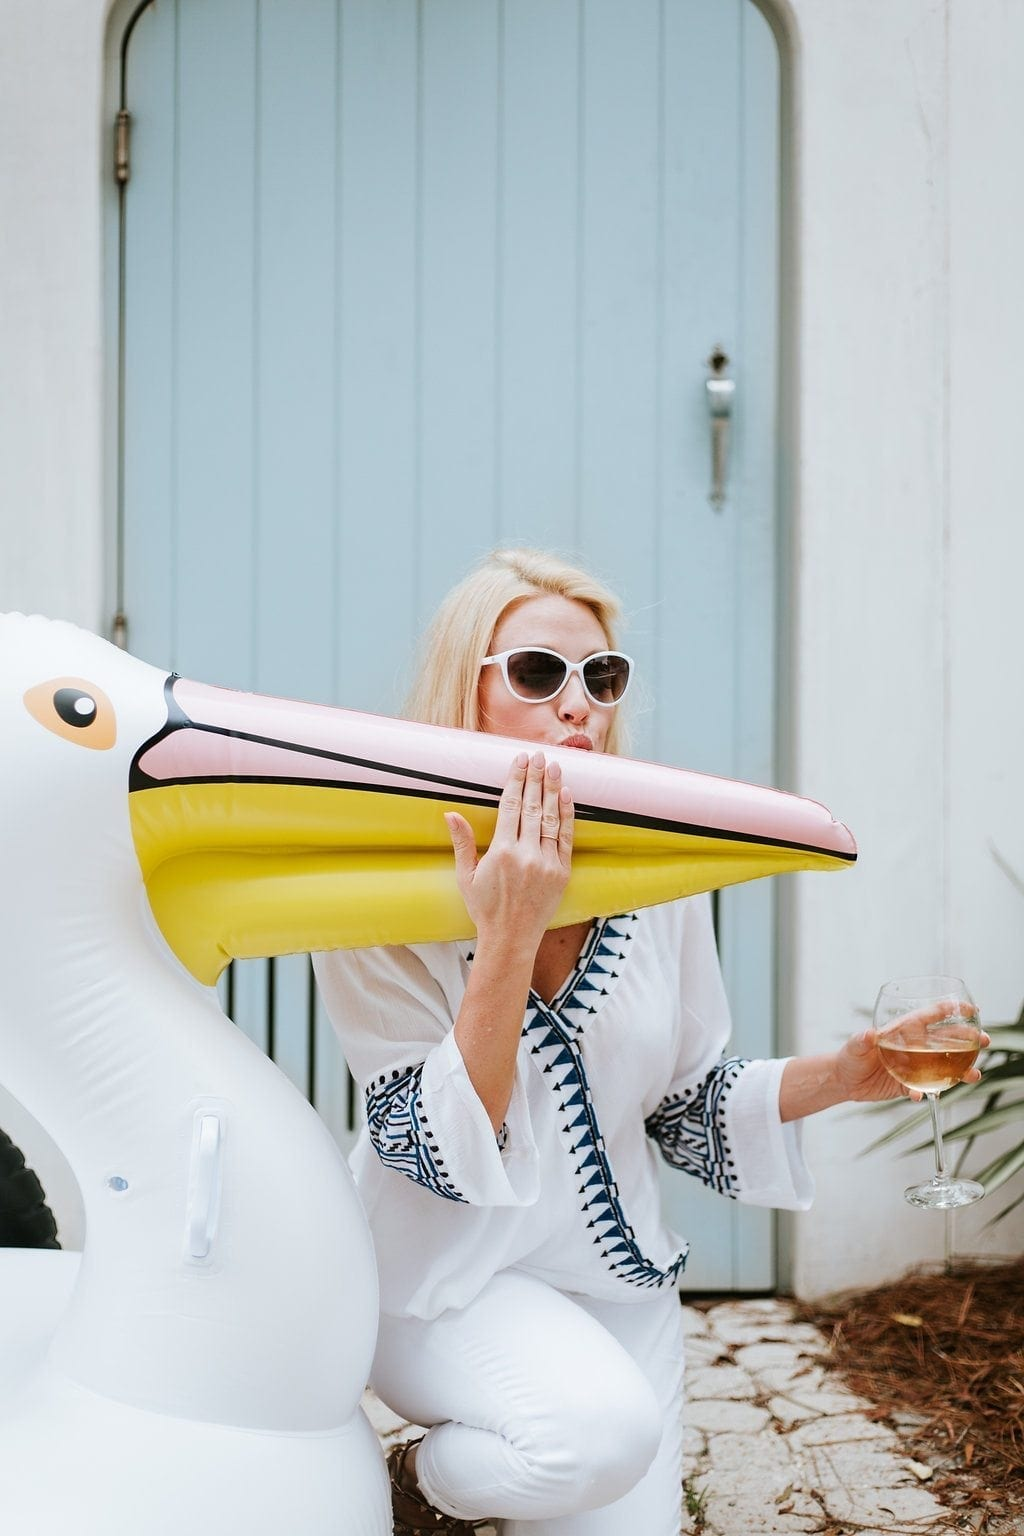 Pelican pool float and white sunglasses.